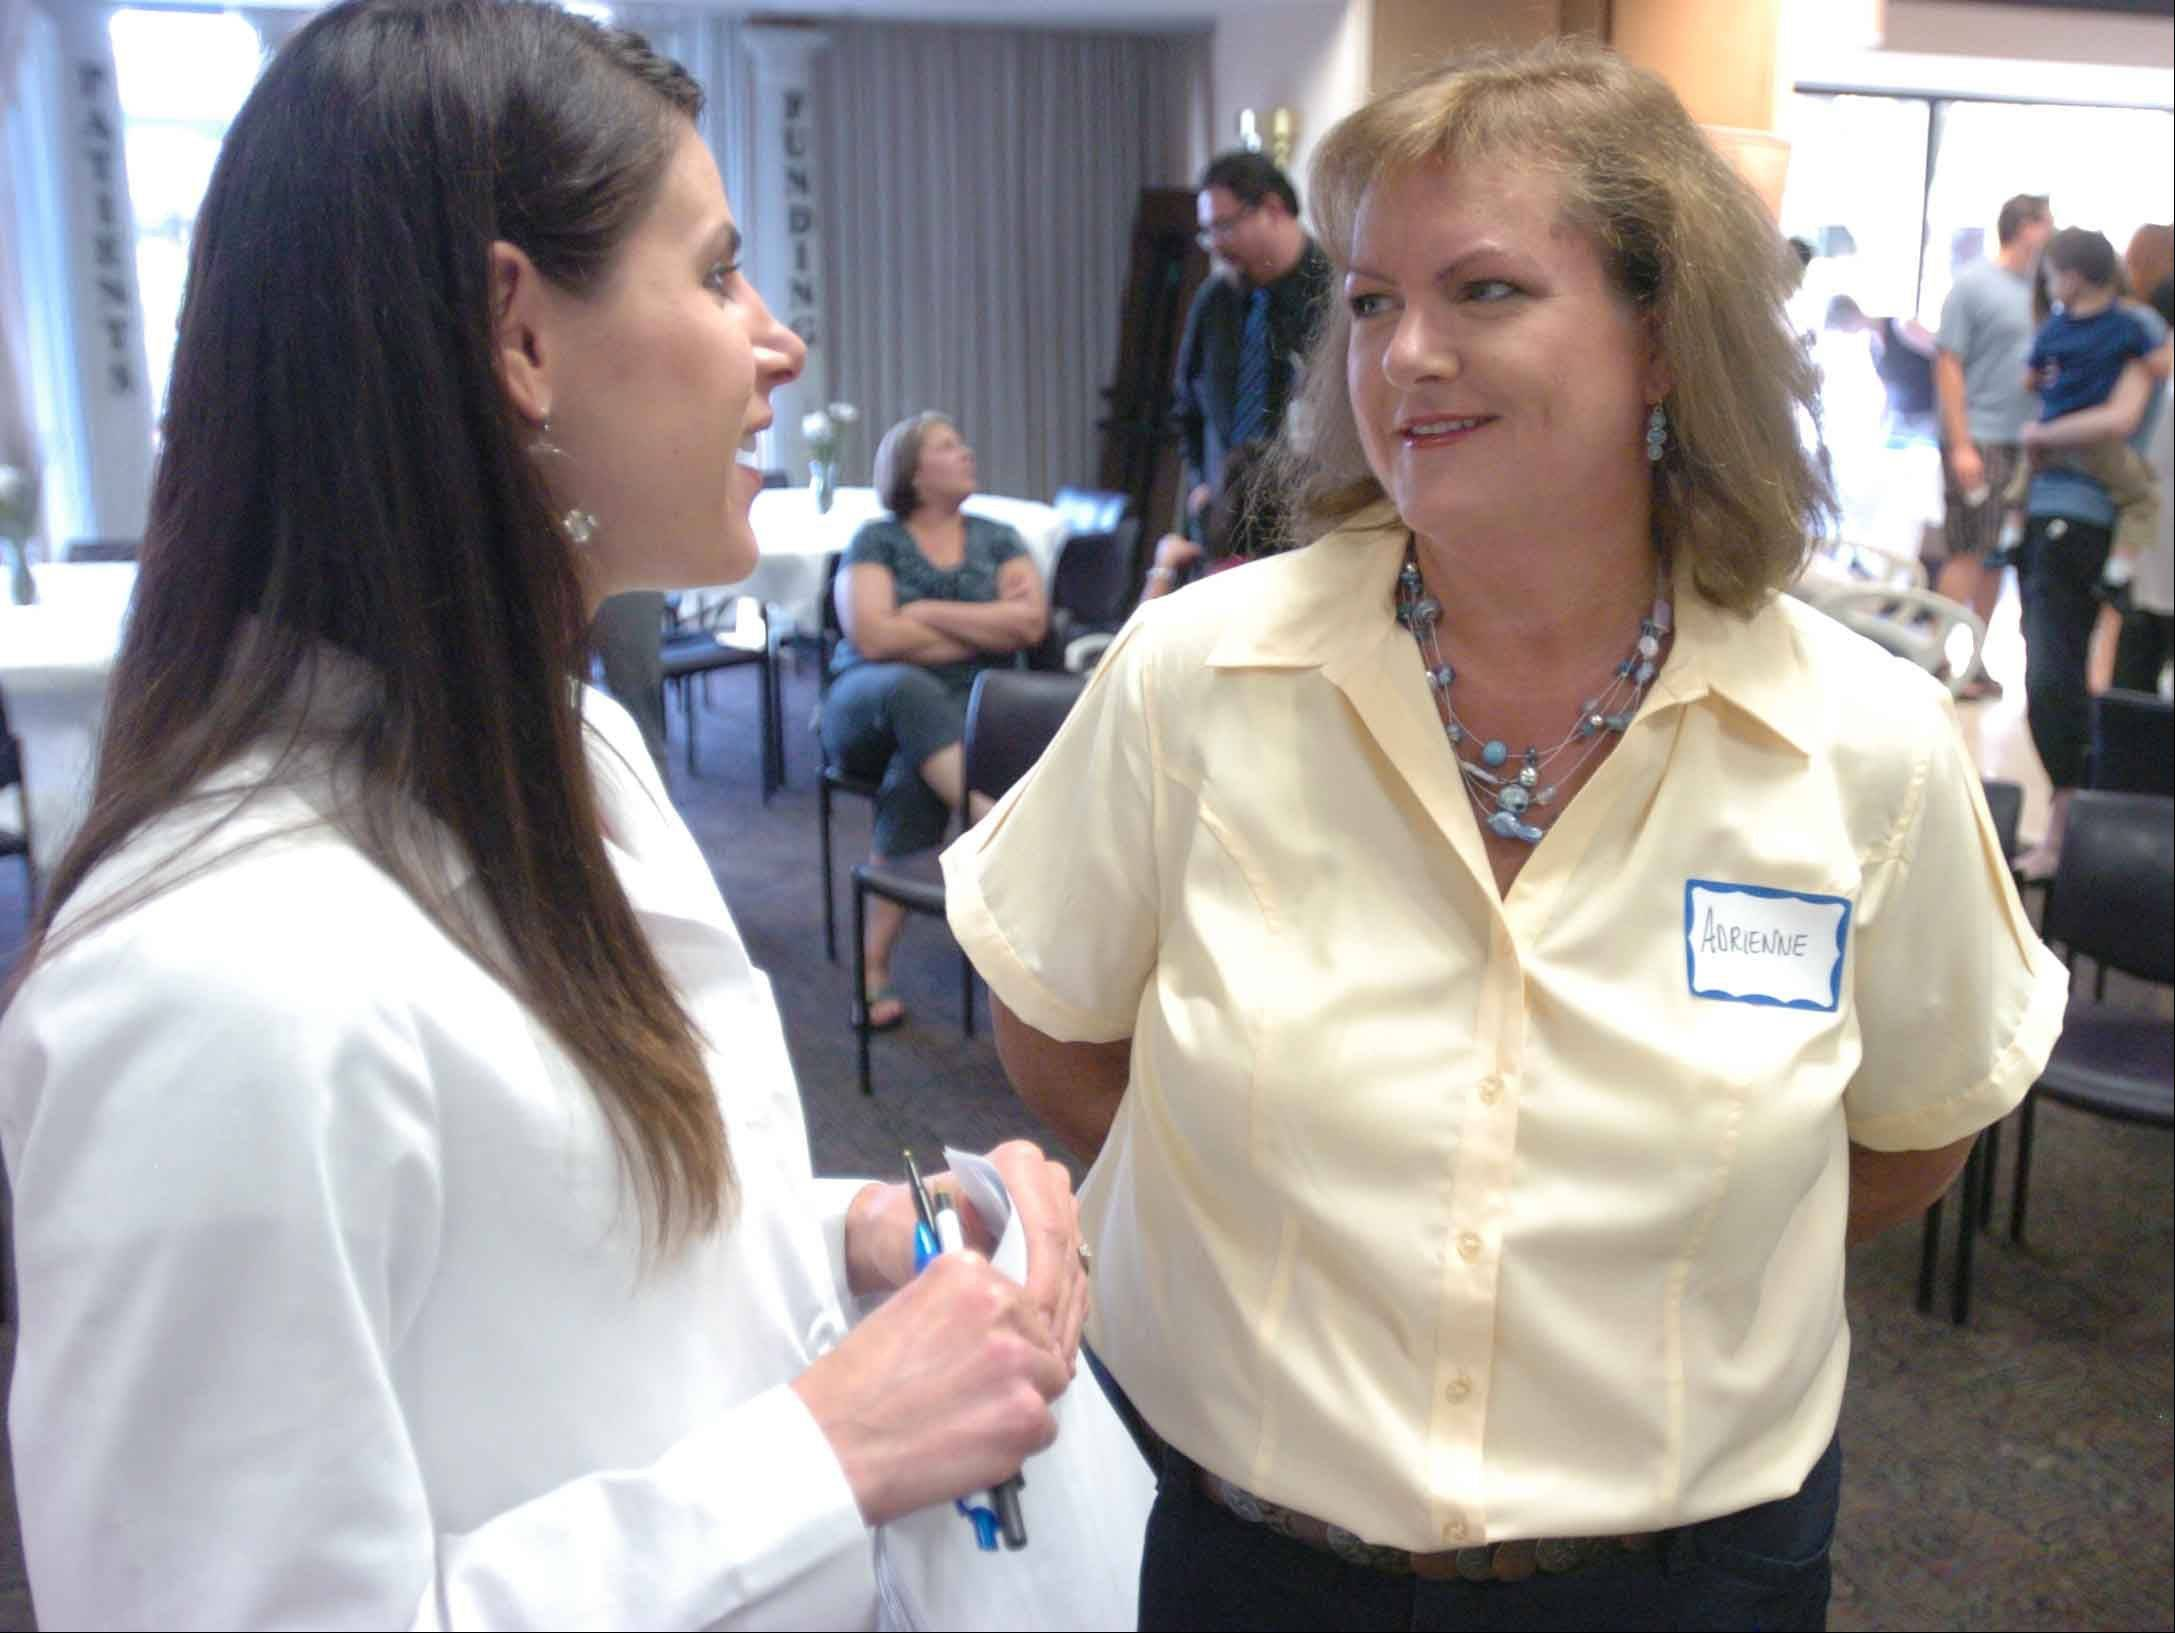 Dietitian Dana White, left, chats with Adrienne Wojcik of Downers Grove at Good Samaritan Hospital's third annual Bariatric Reunion Wednesday evening.